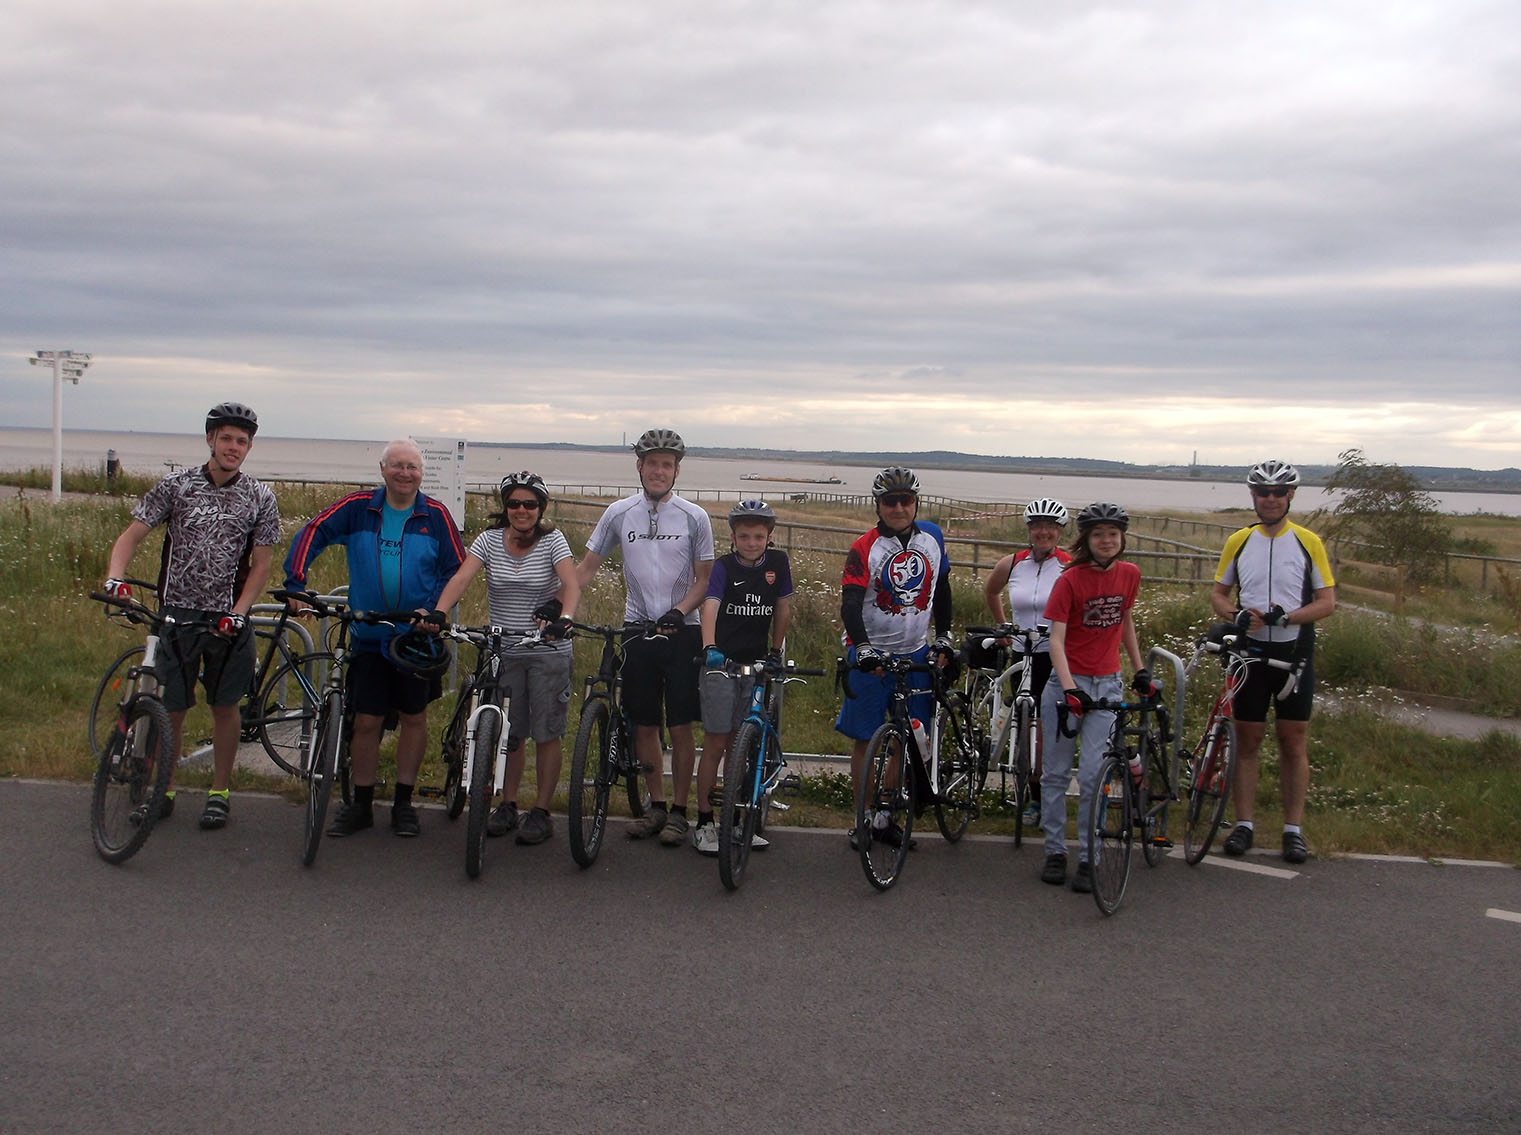 Gateway Family Ride to Thameside Nature Park – Sunday 4th September